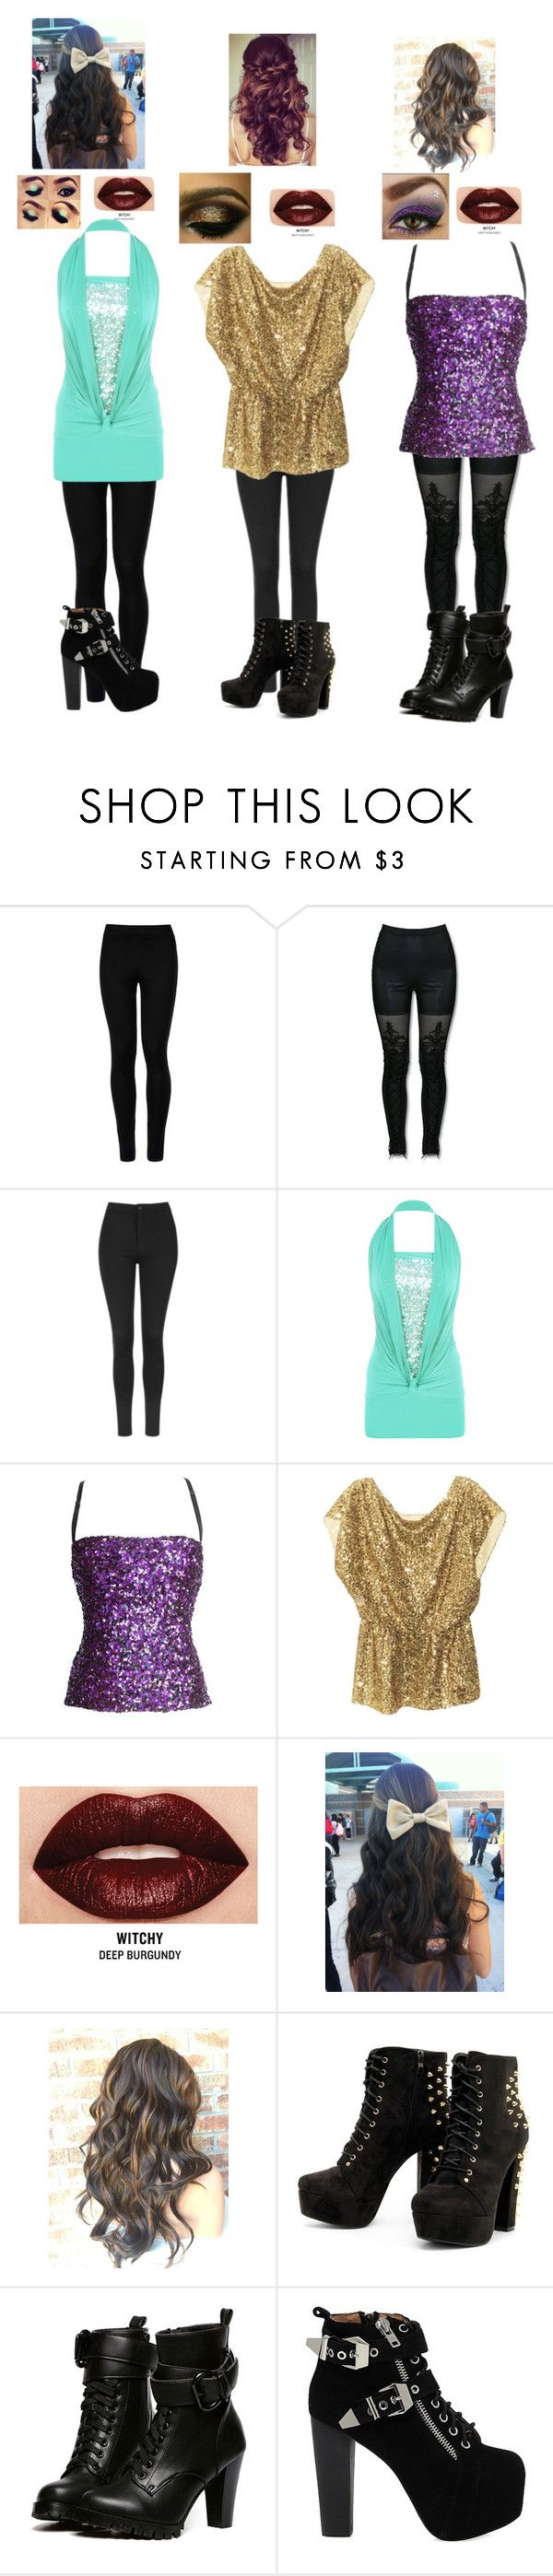 """Group Outfit #49"" by megalee ❤ liked on Polyvore featuring Wolford, MACBETH, Topshop, WearAll, Dolce&Gabbana, Alice + Olivia, Smashbox, WithChic and Jeffrey Campbell"